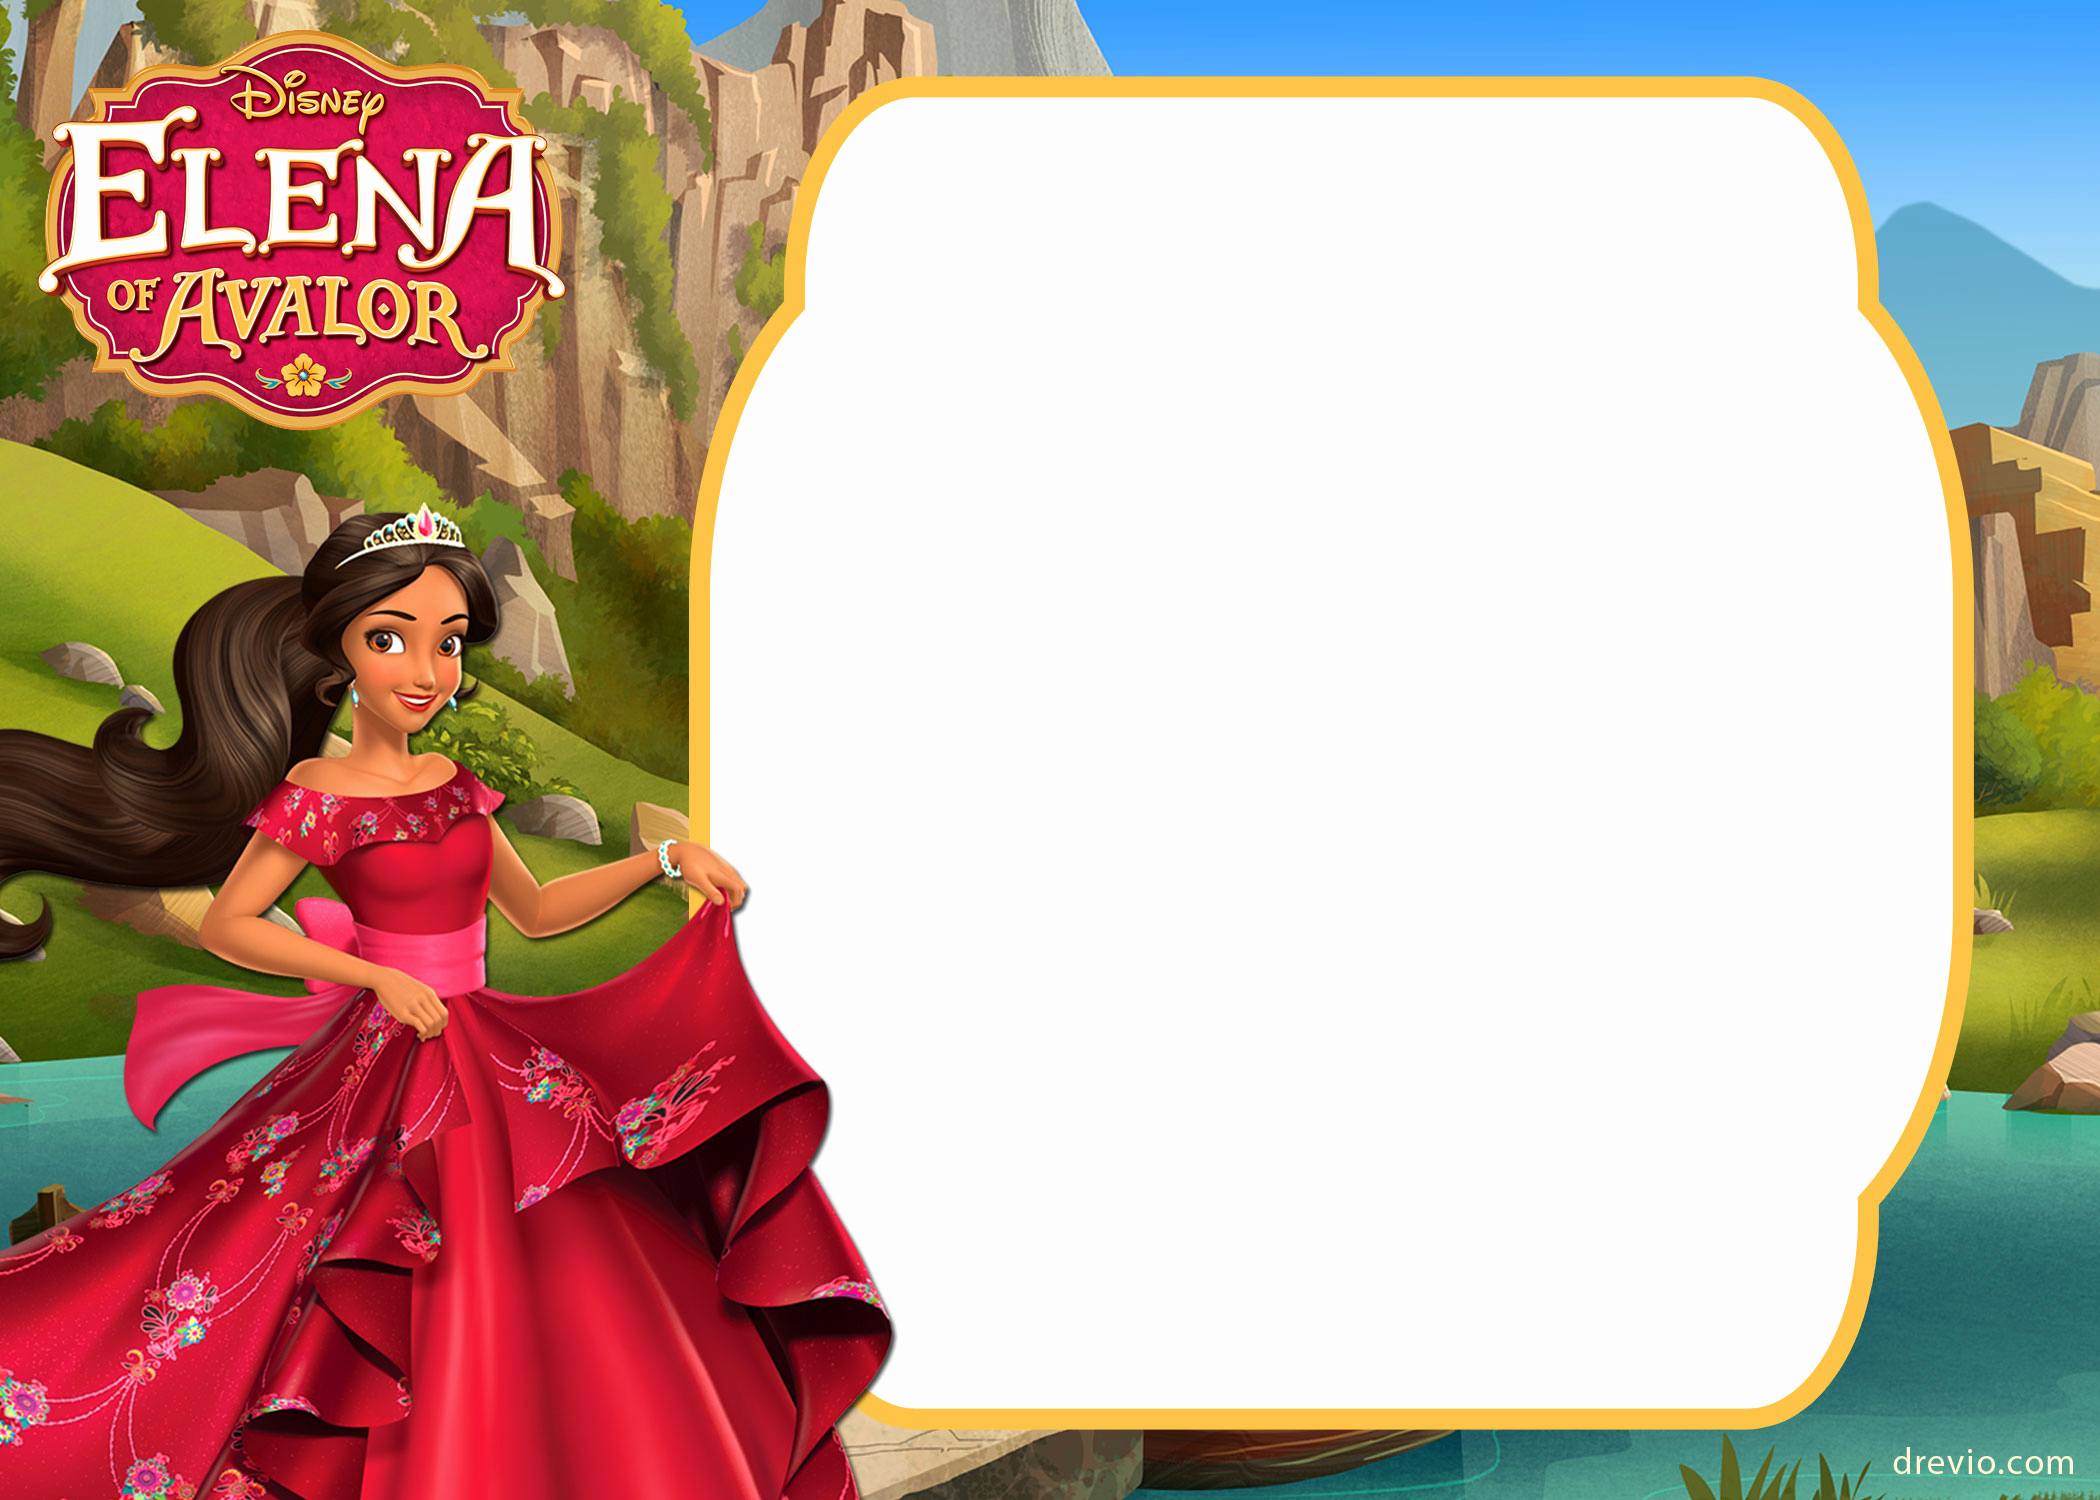 Elena Of Avalor Invitation Template Lovely Free Printable Elena Of Avalor Invitation Template